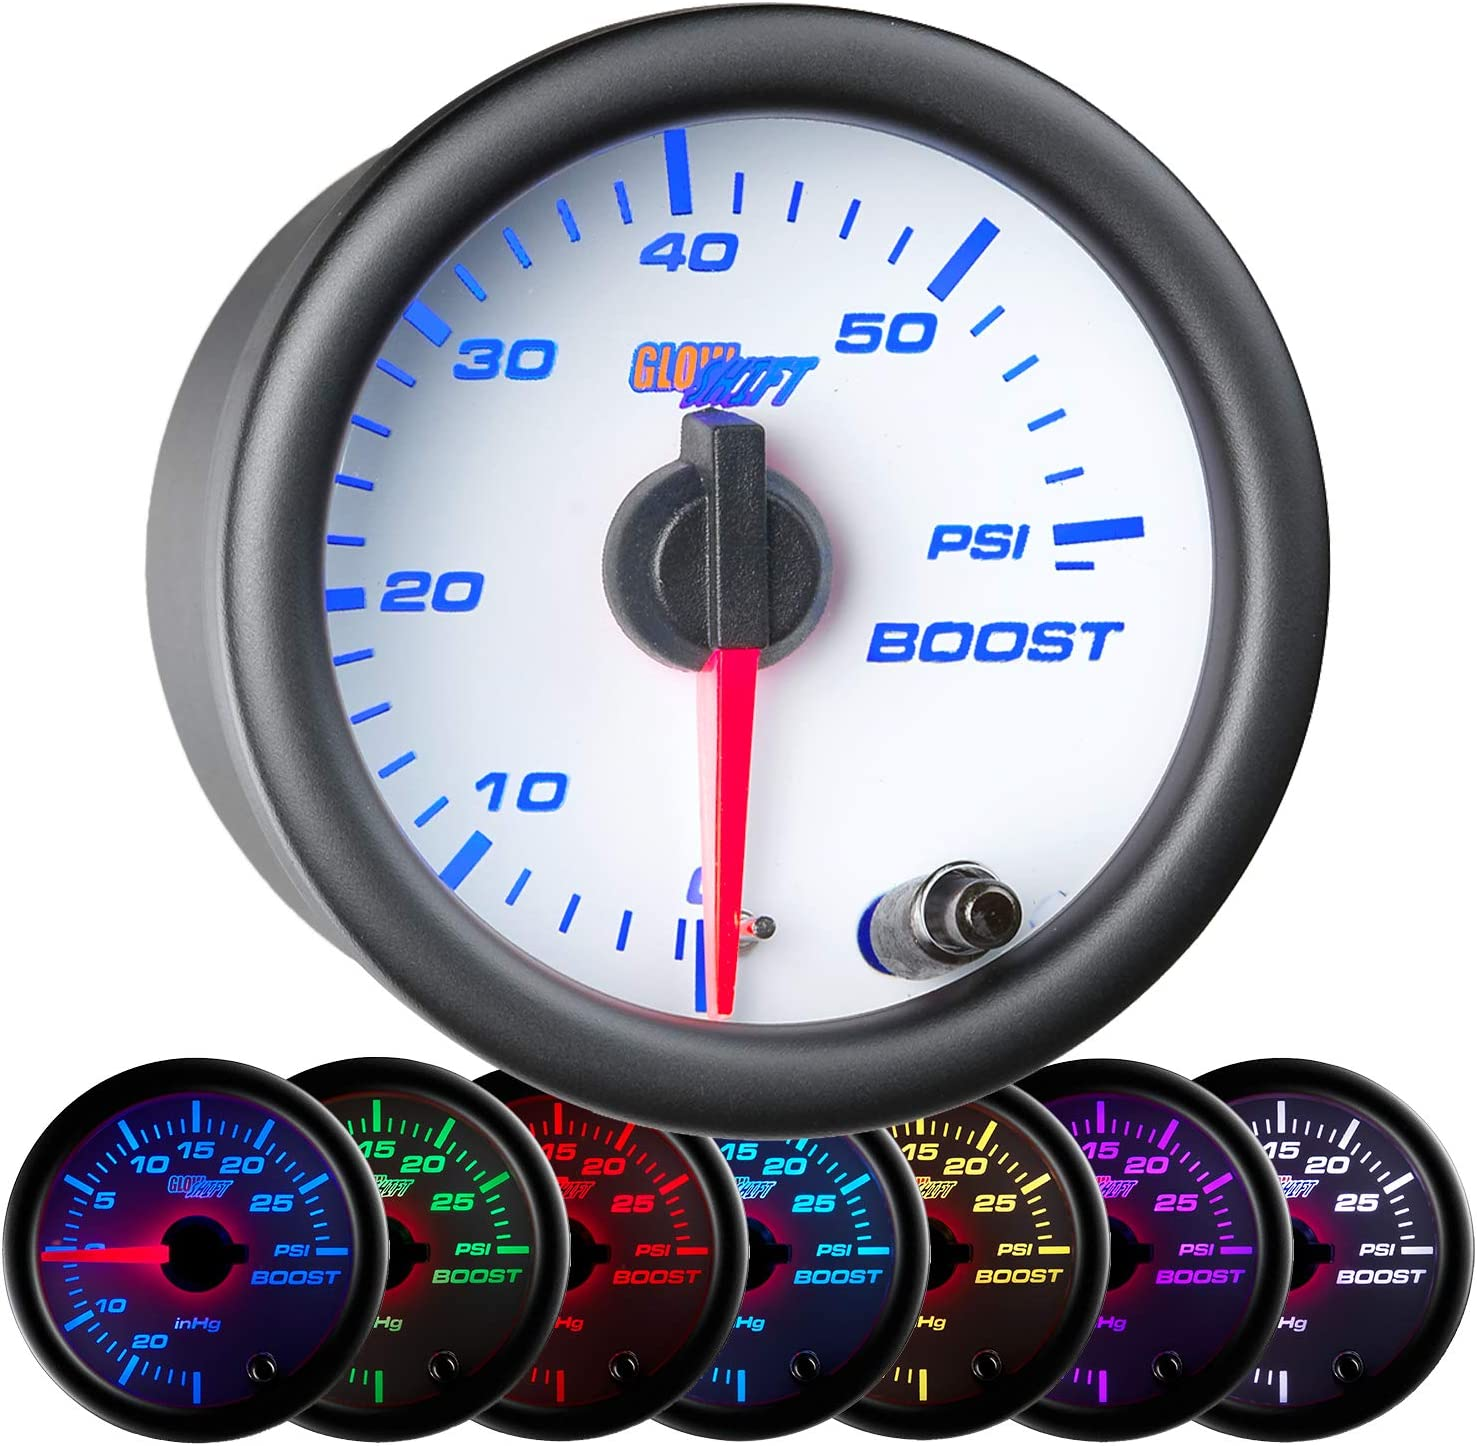 "GlowShift White 7 Color 60 PSI Turbo Boost Gauge Kit - Includes Mechanical Hose & Fittings - White Dial - Clear Lens - for Diesel Trucks - 2-1/16"" 52mm"